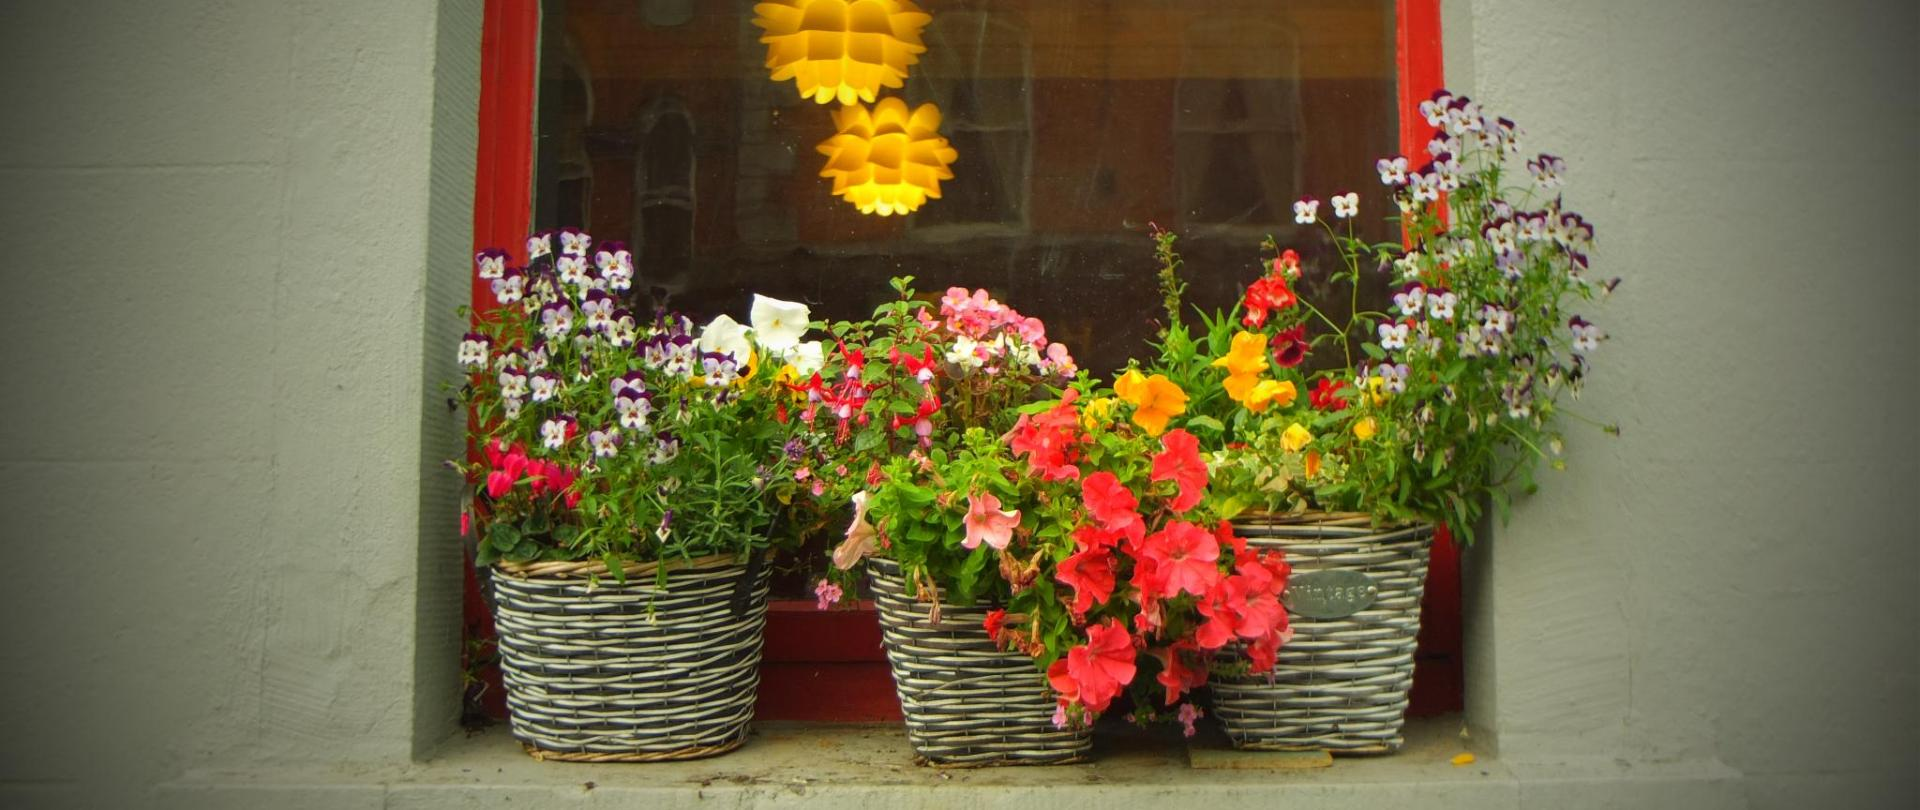 Hostel Window baskets.JPG